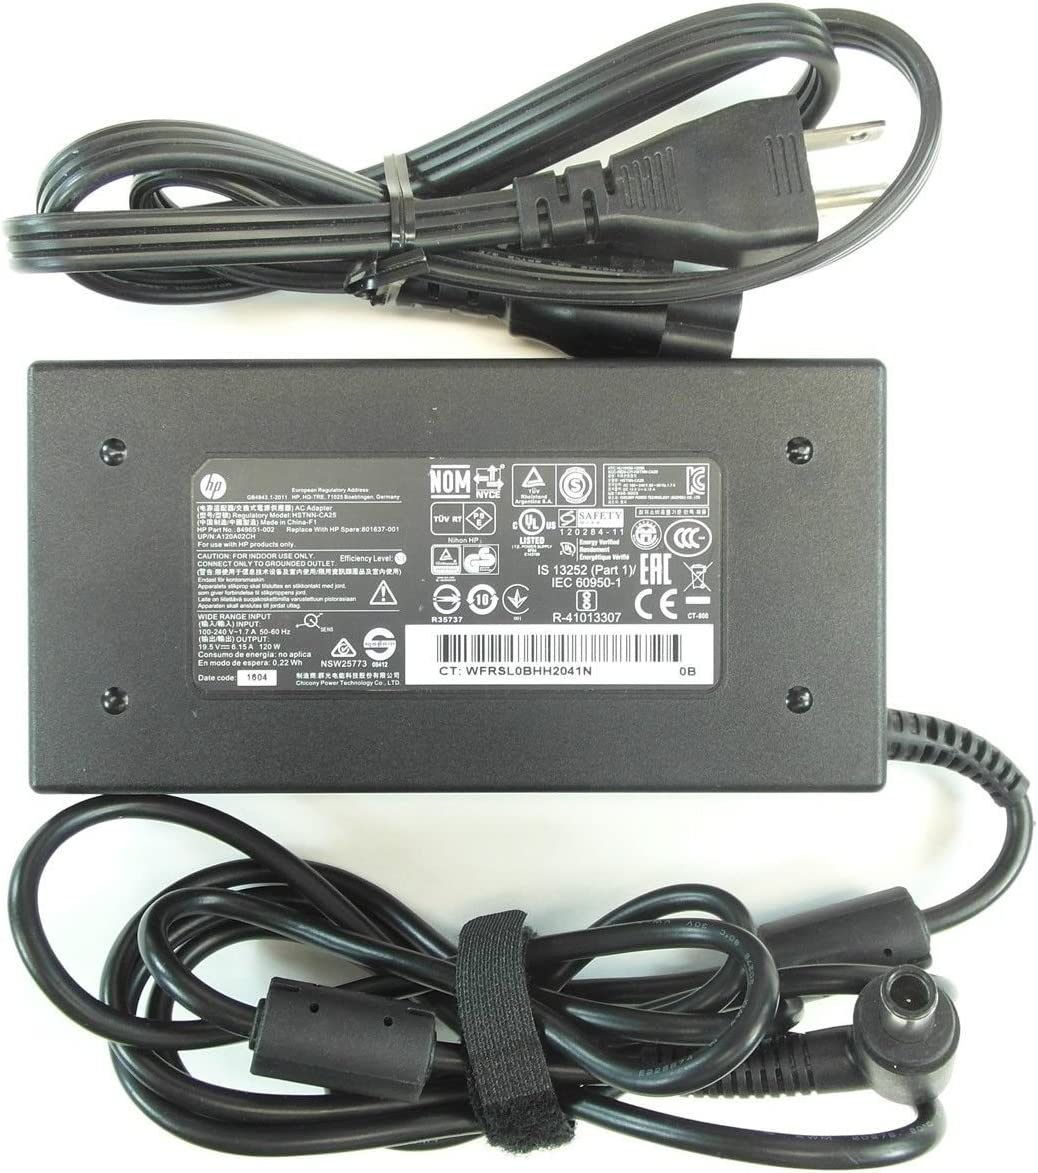 New Genuine HP Envy Pavilion 19.5V 6.15A 120W Smart Pin AC Adapter HSTNN-CA25 730982-002